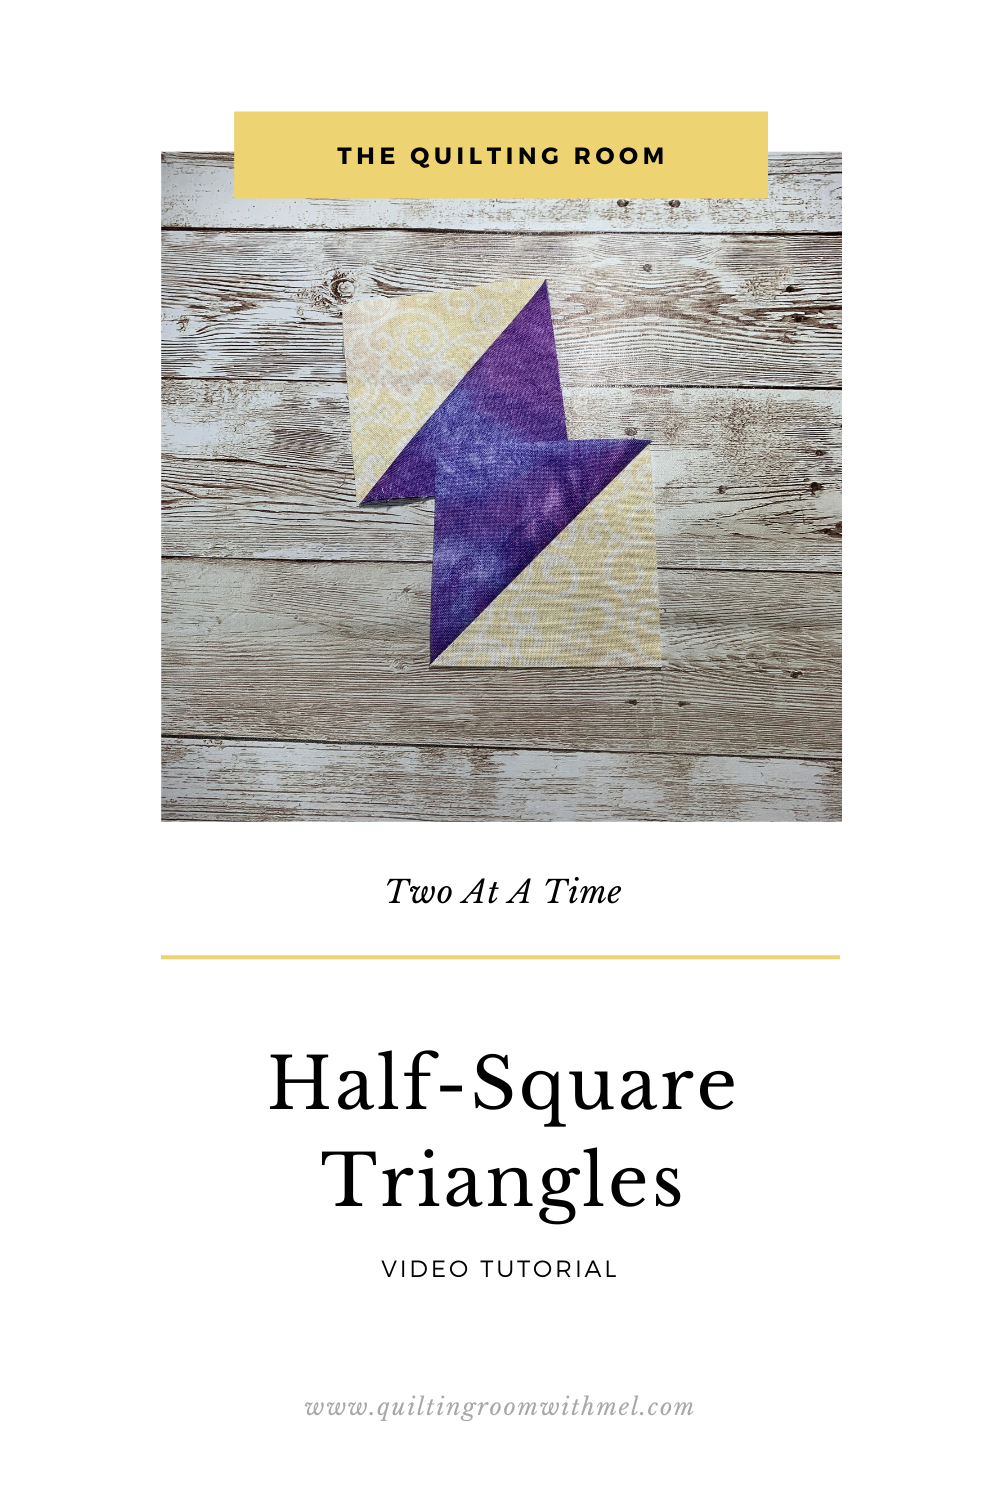 We show you how to make half-square triangles two at a time plus we explain the math formula so you can make them any size.